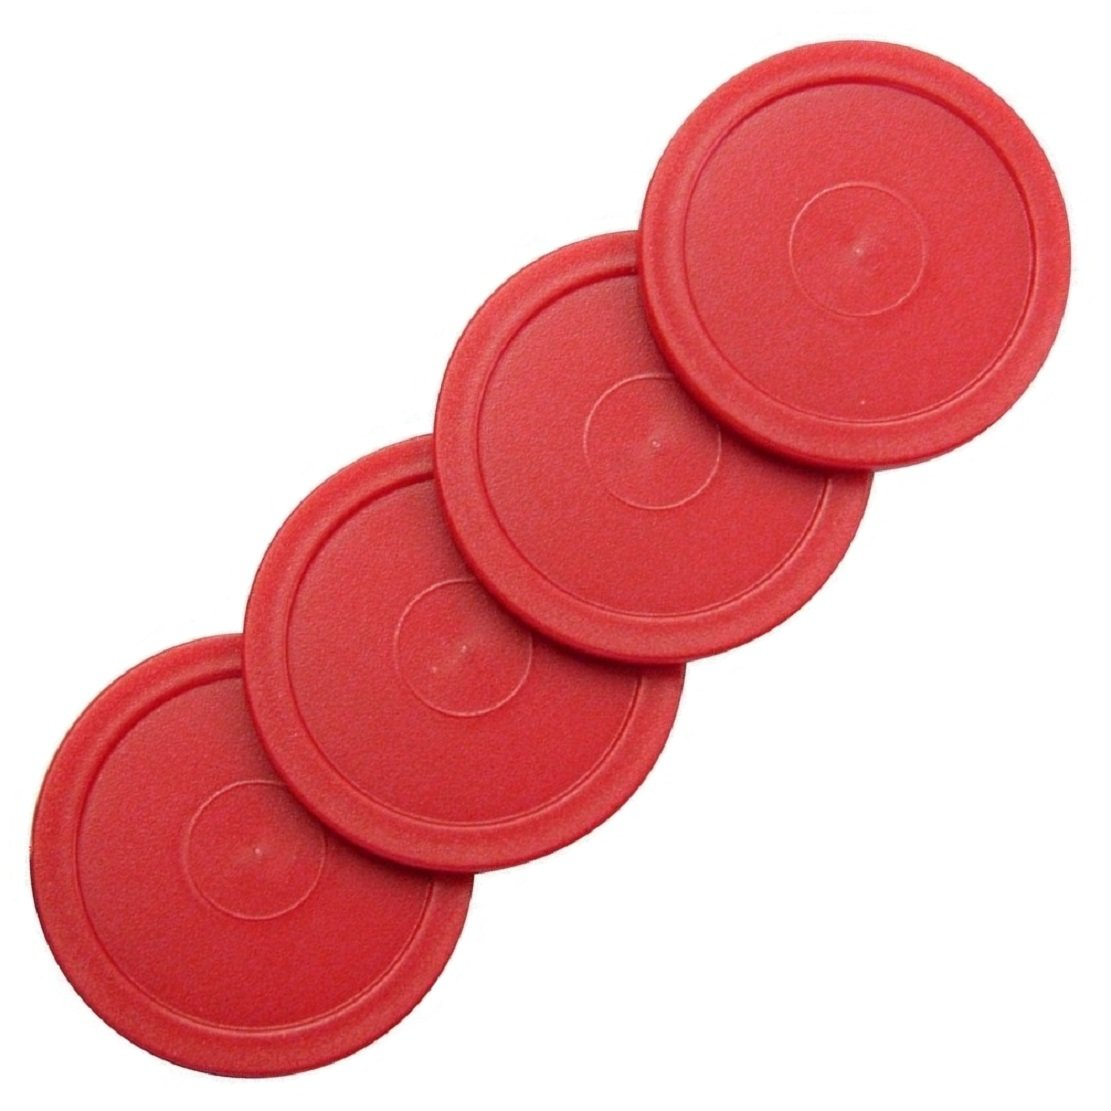 4 Red Puck Set 2-1/2' for Harvard Air Hockey Billiard Evolution